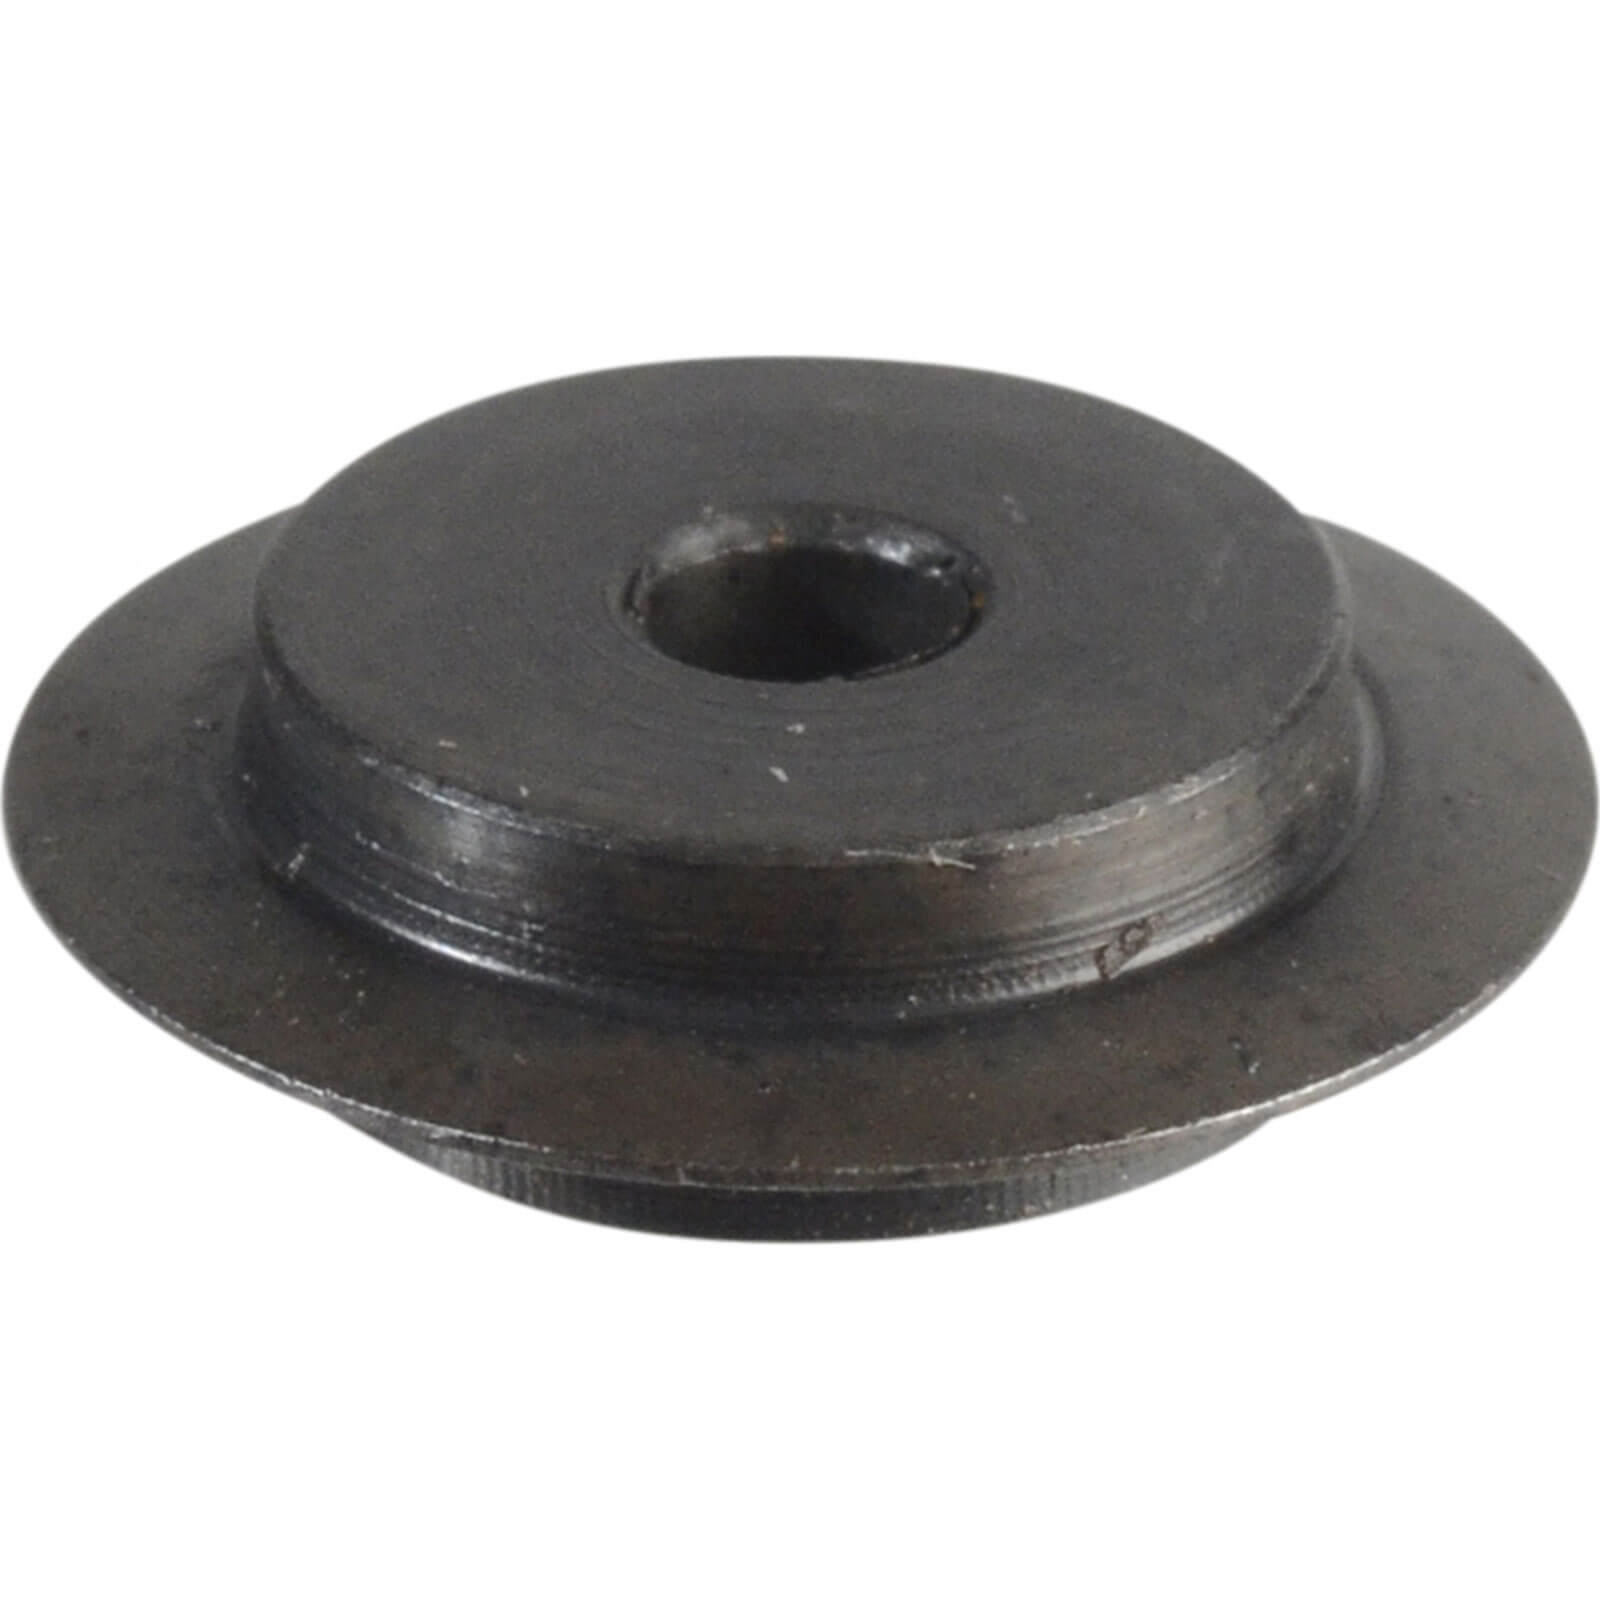 Image of Kopex Replacement Cutting Wheels Pack of 10